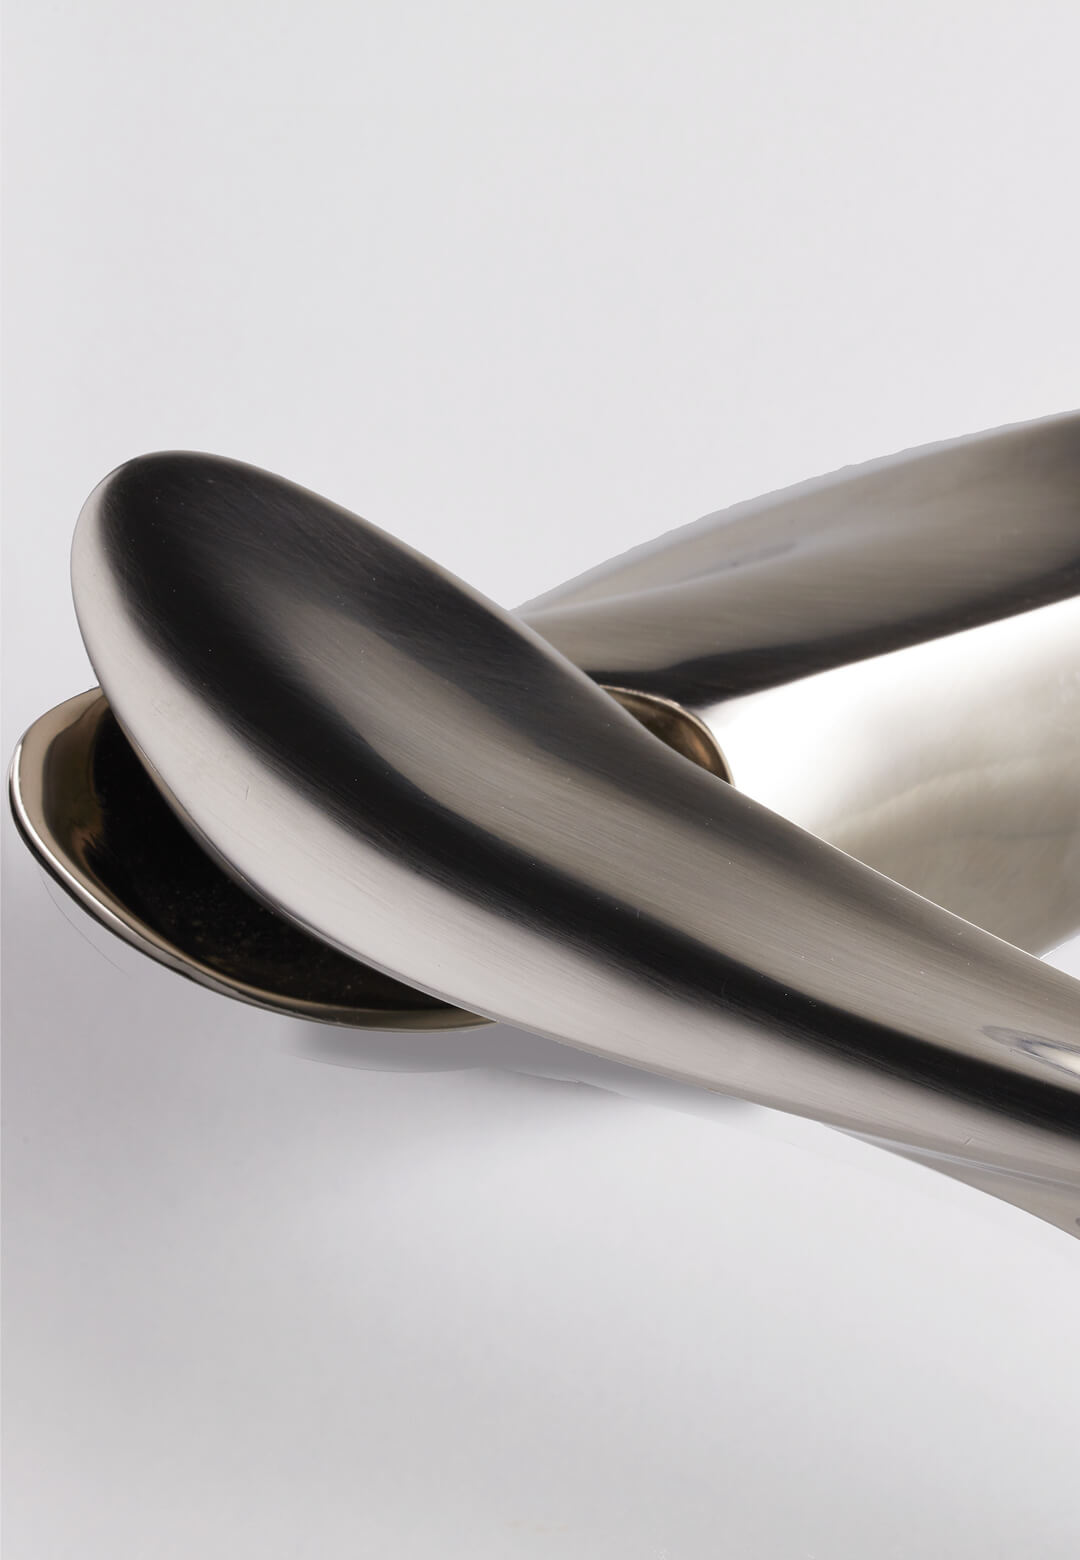 The NEXXA door handle in satin finish created by Zaha Hadid Design | Zaha Hadid Design | NEXXA | STIRworld